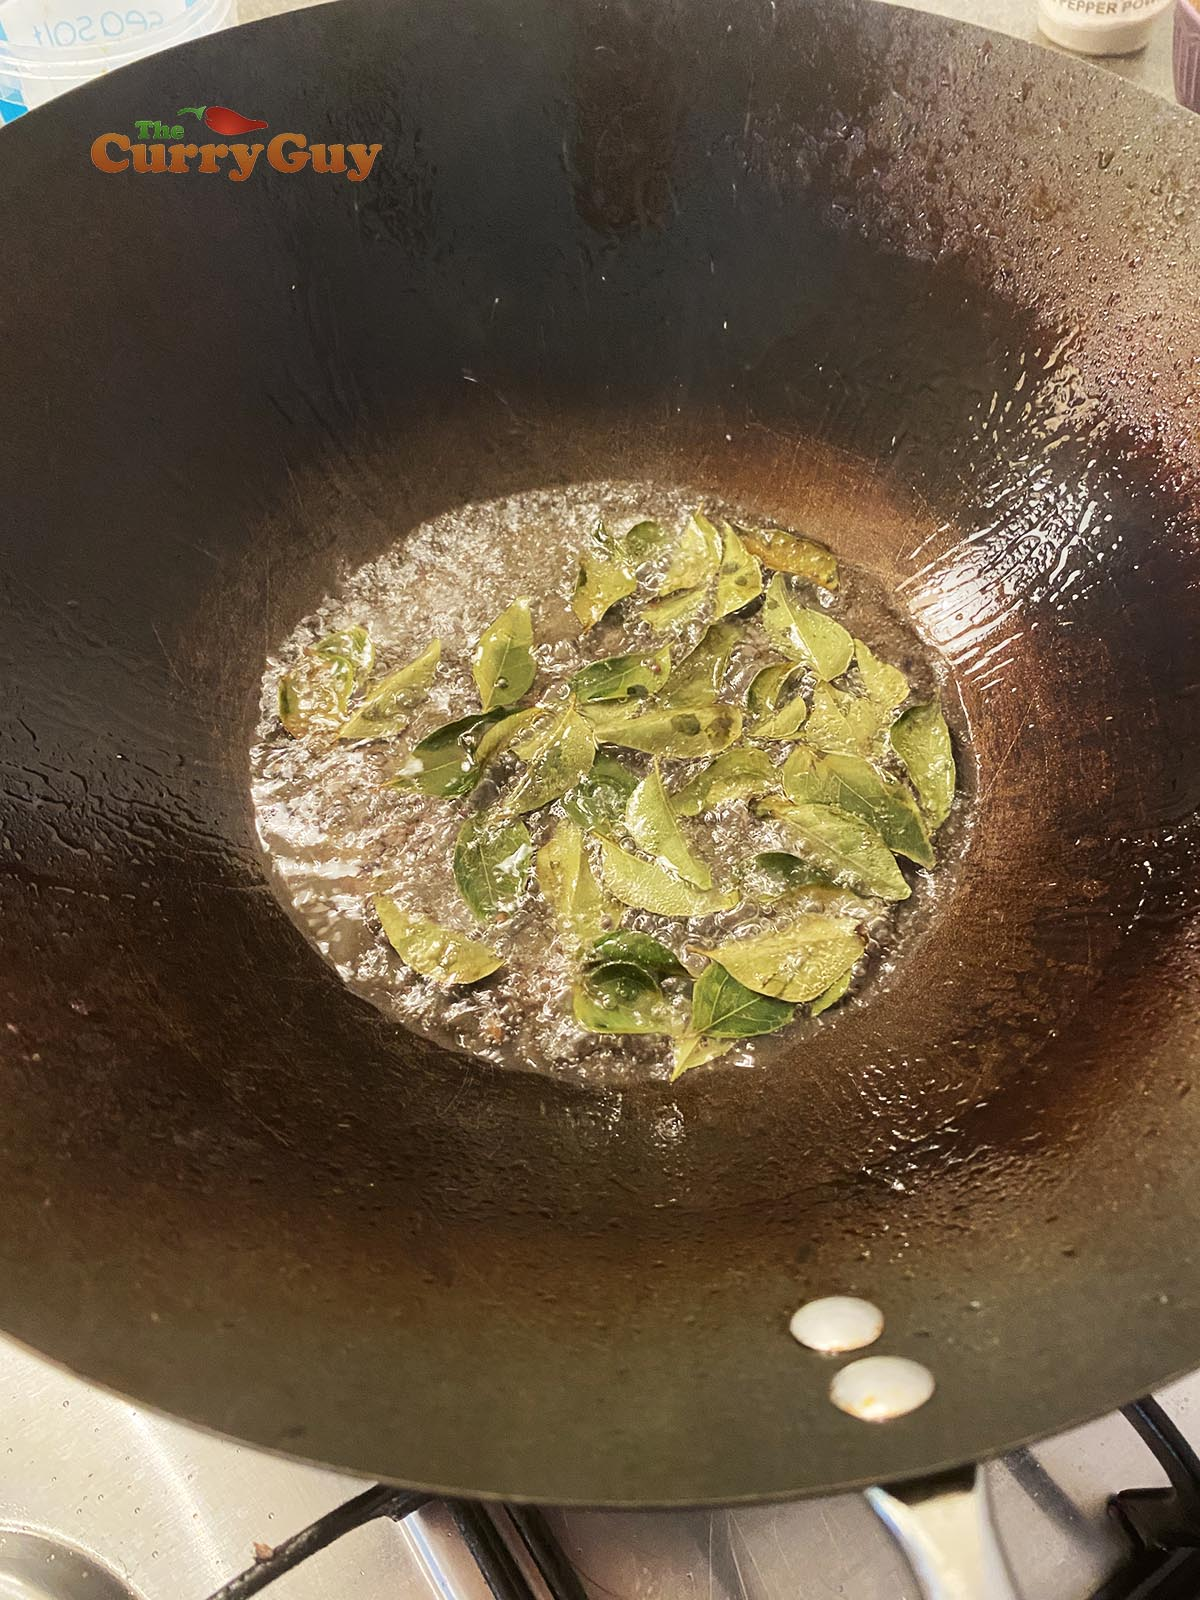 Infusing spices in oil